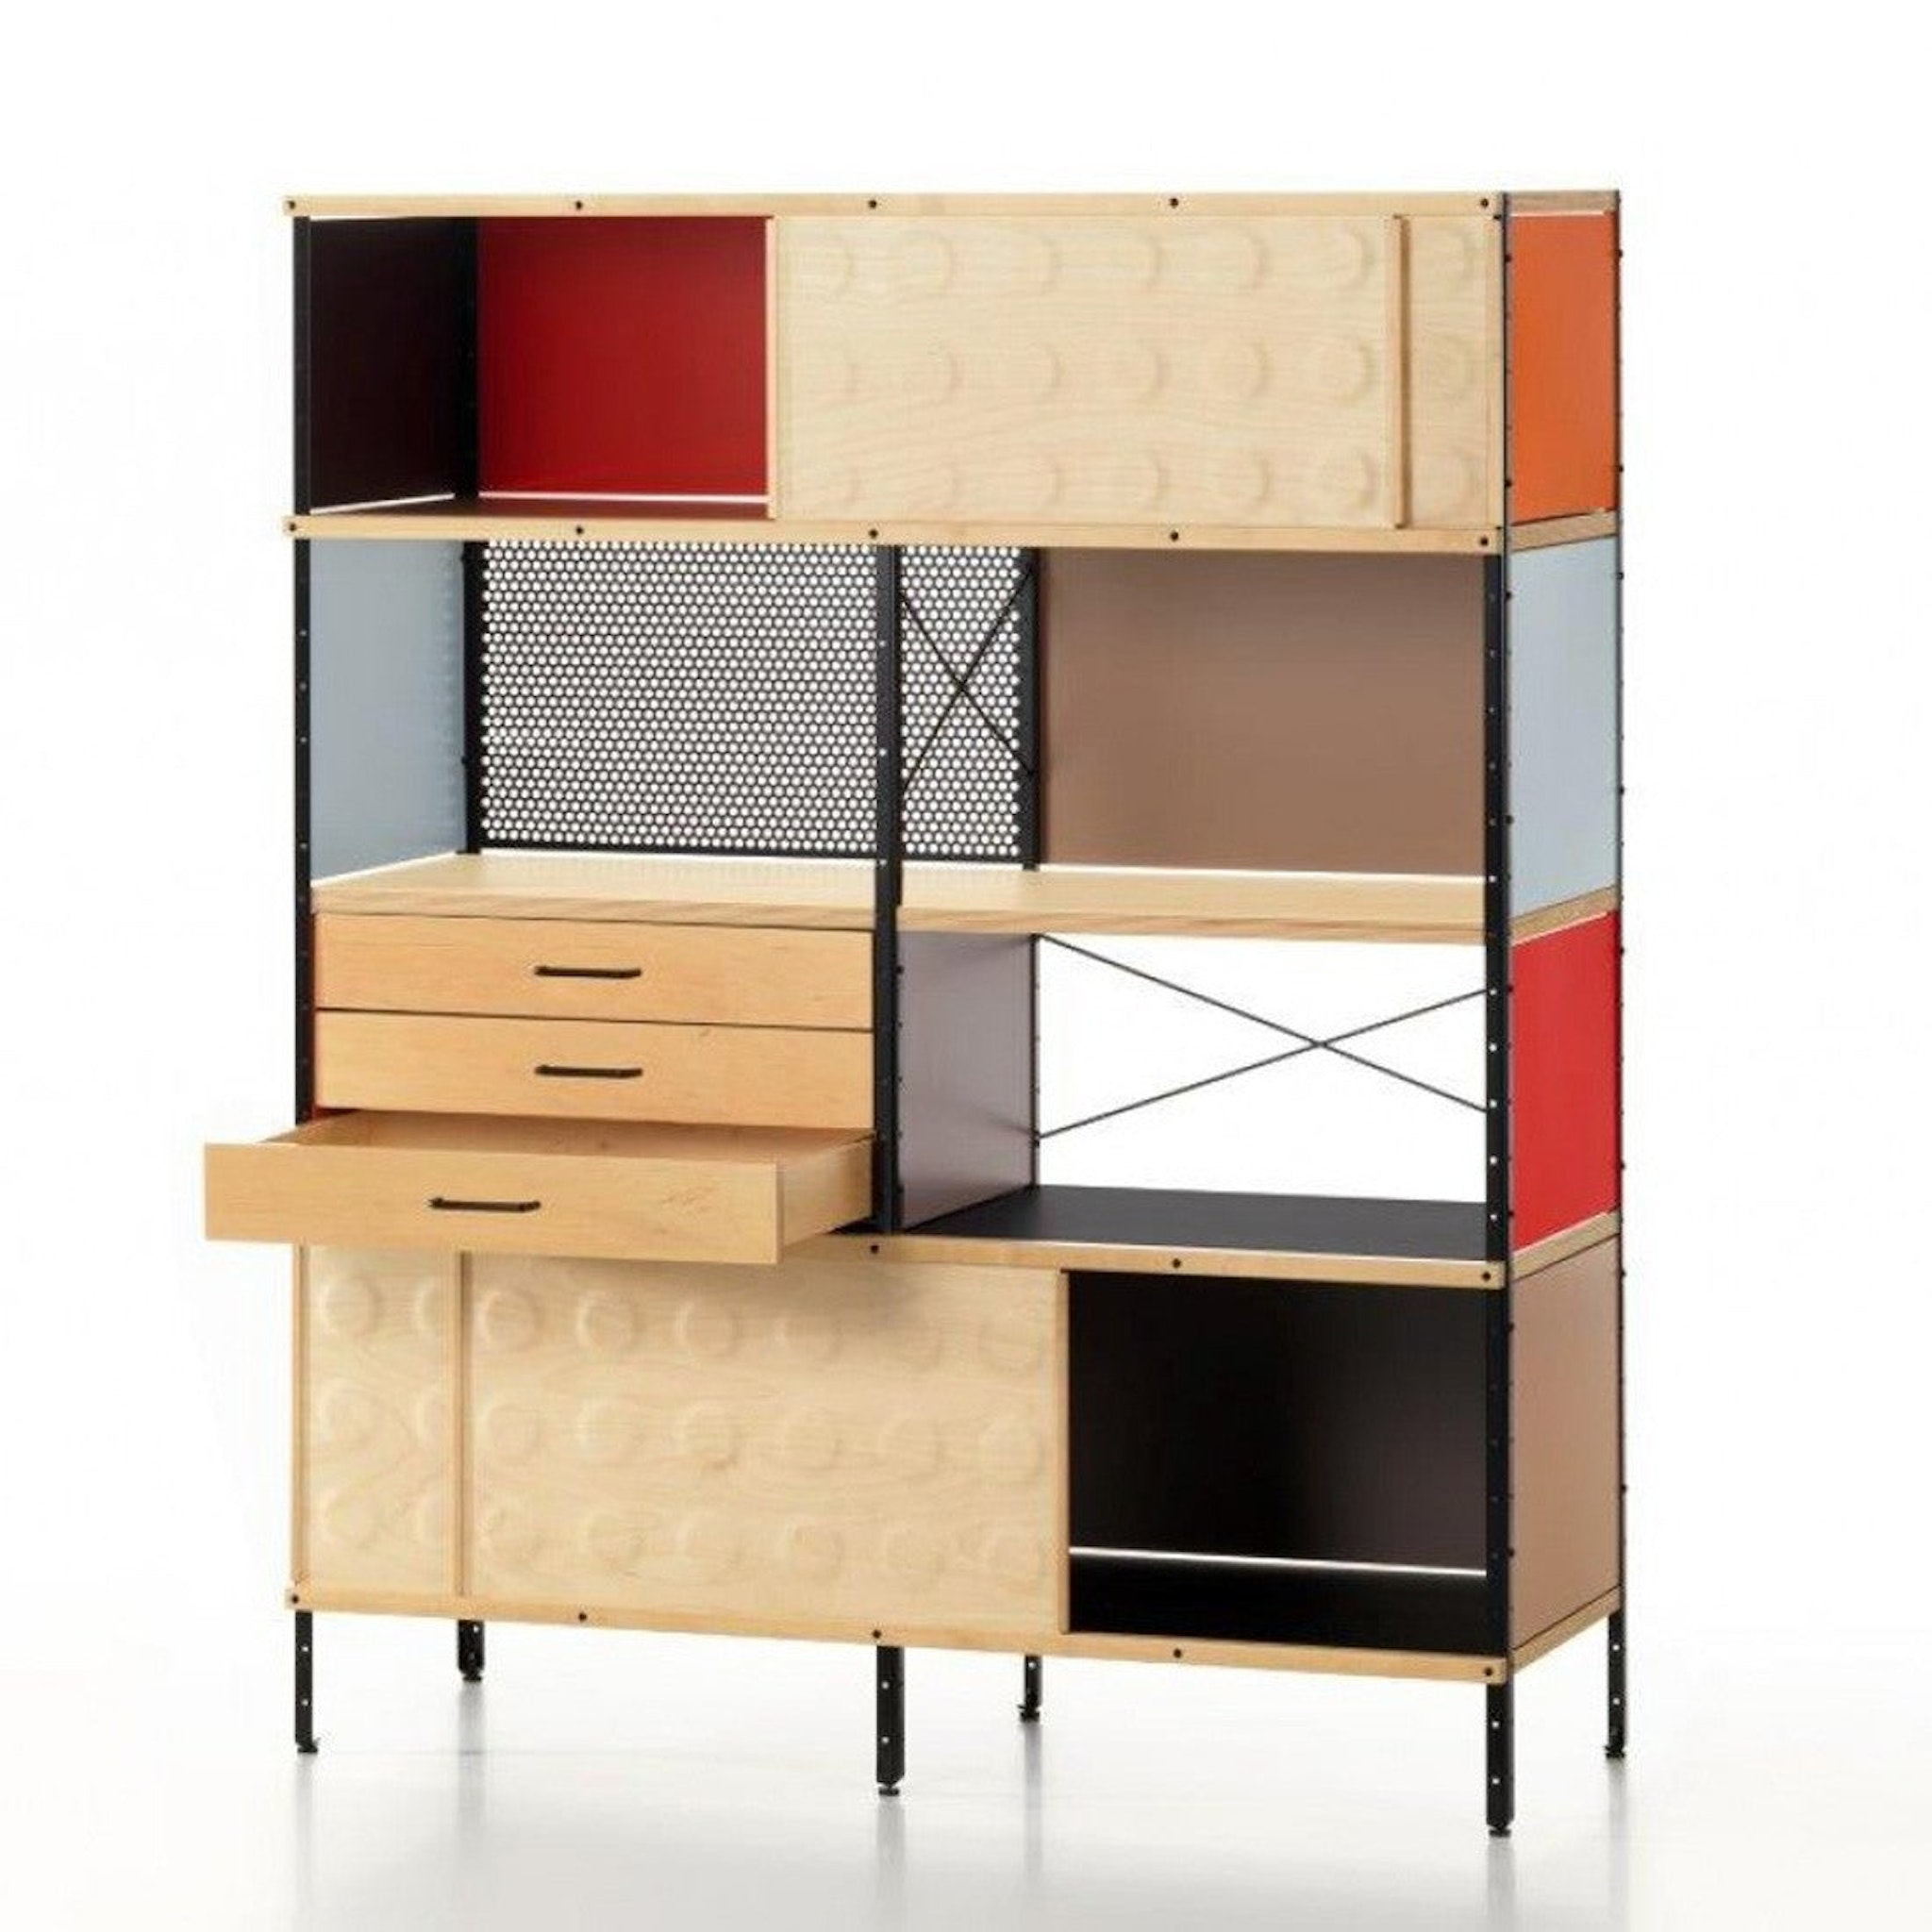 Eames Storage Unit Bookcase by Charles & Ray Eames for Vitra